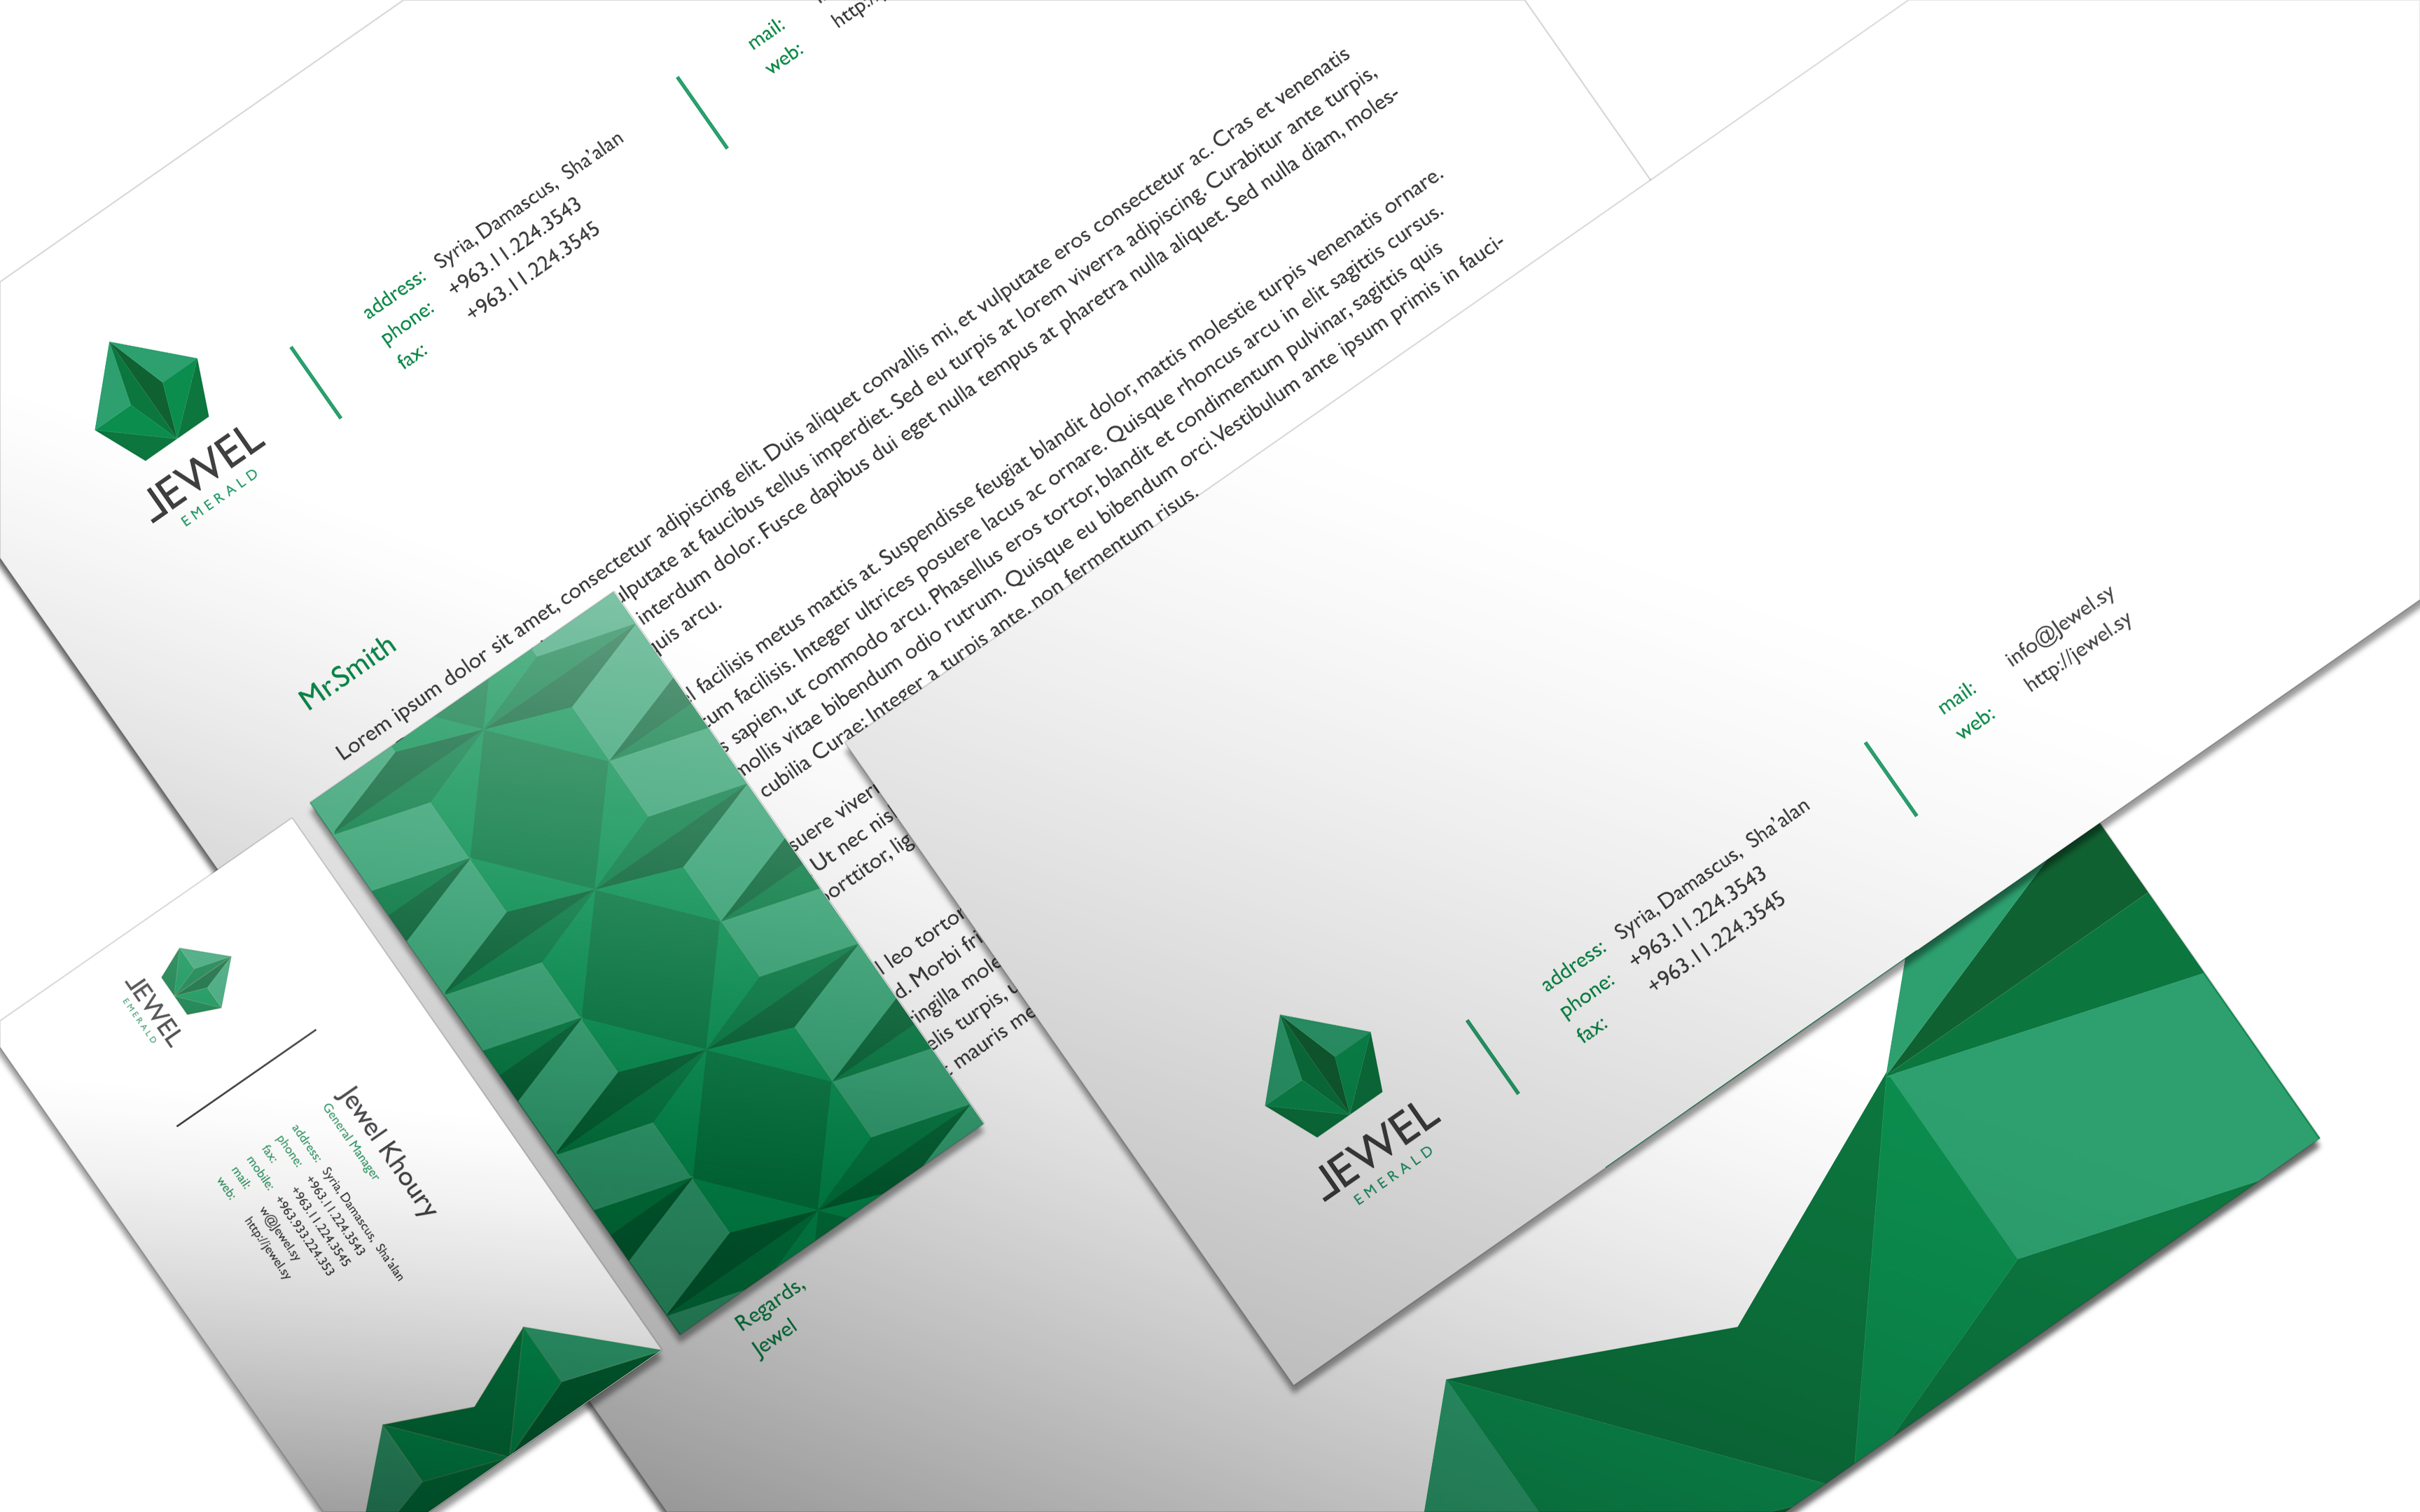 jewelry store corporate identity design with letter head and envelope